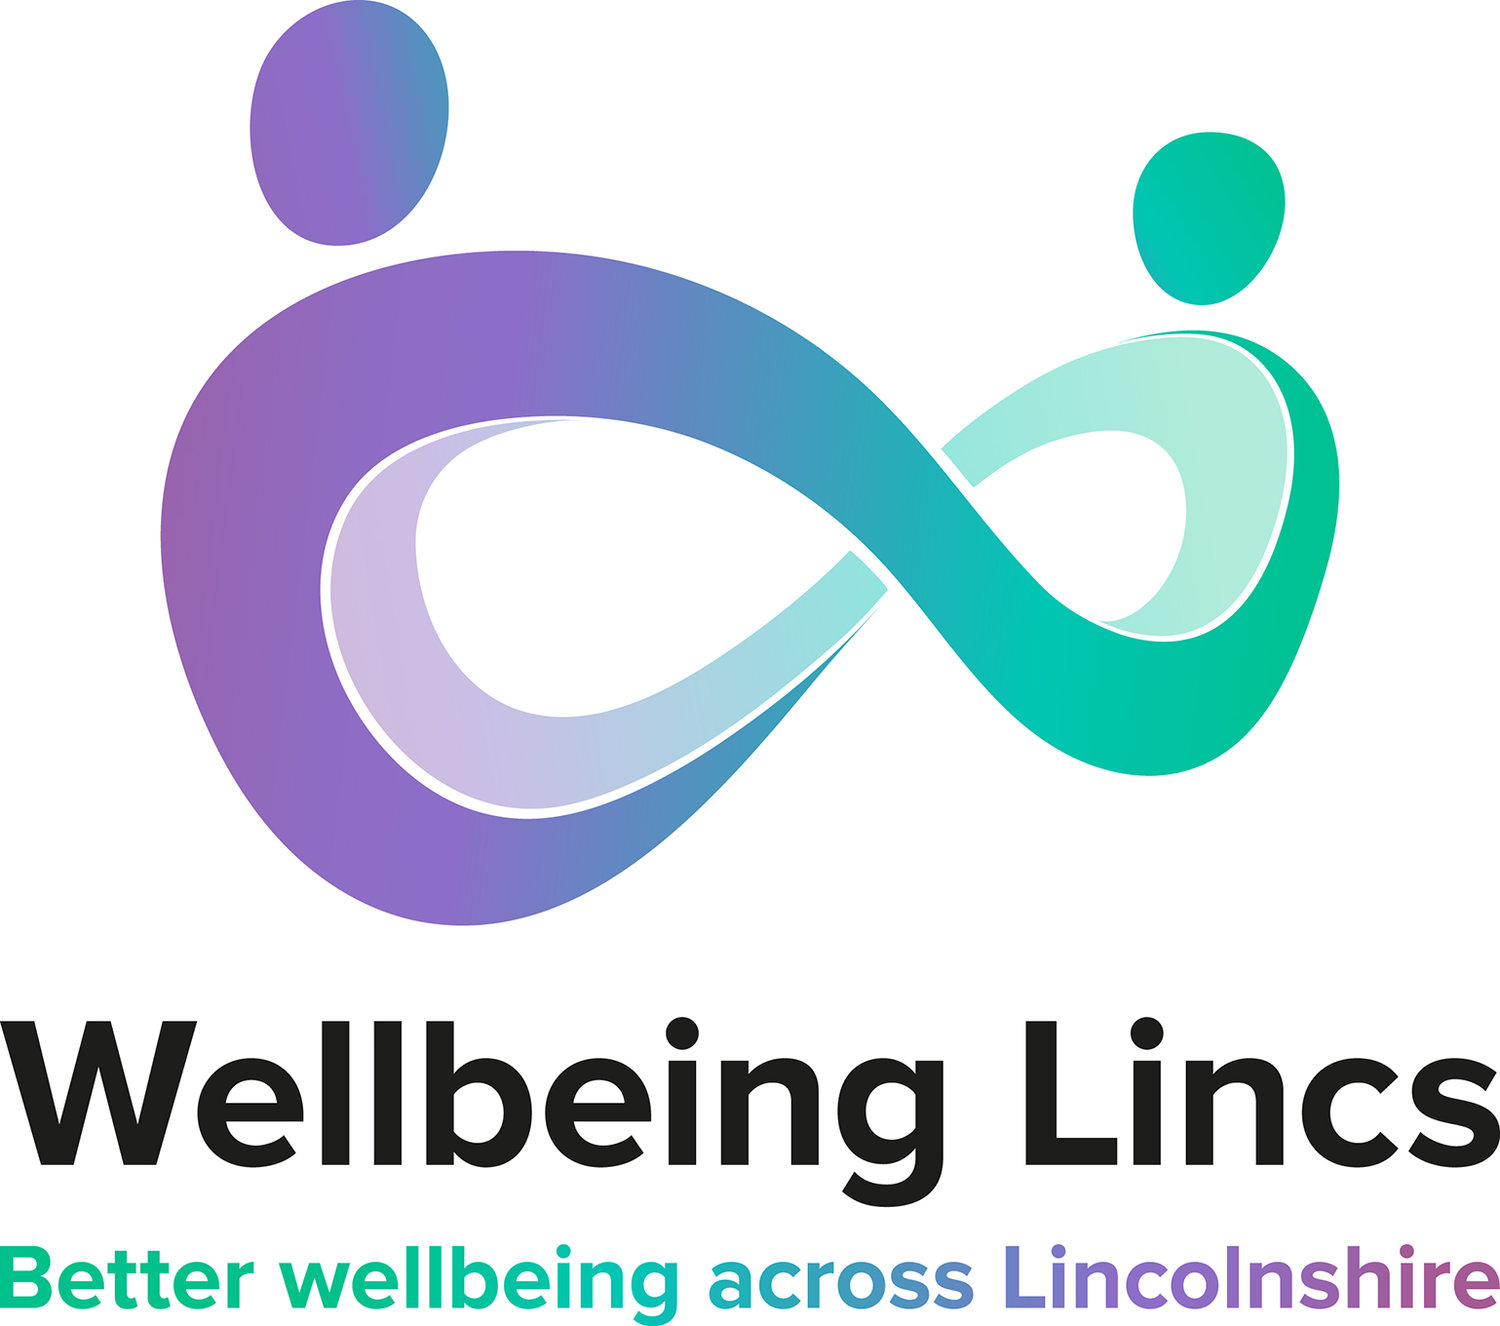 Wellbeing Lincs